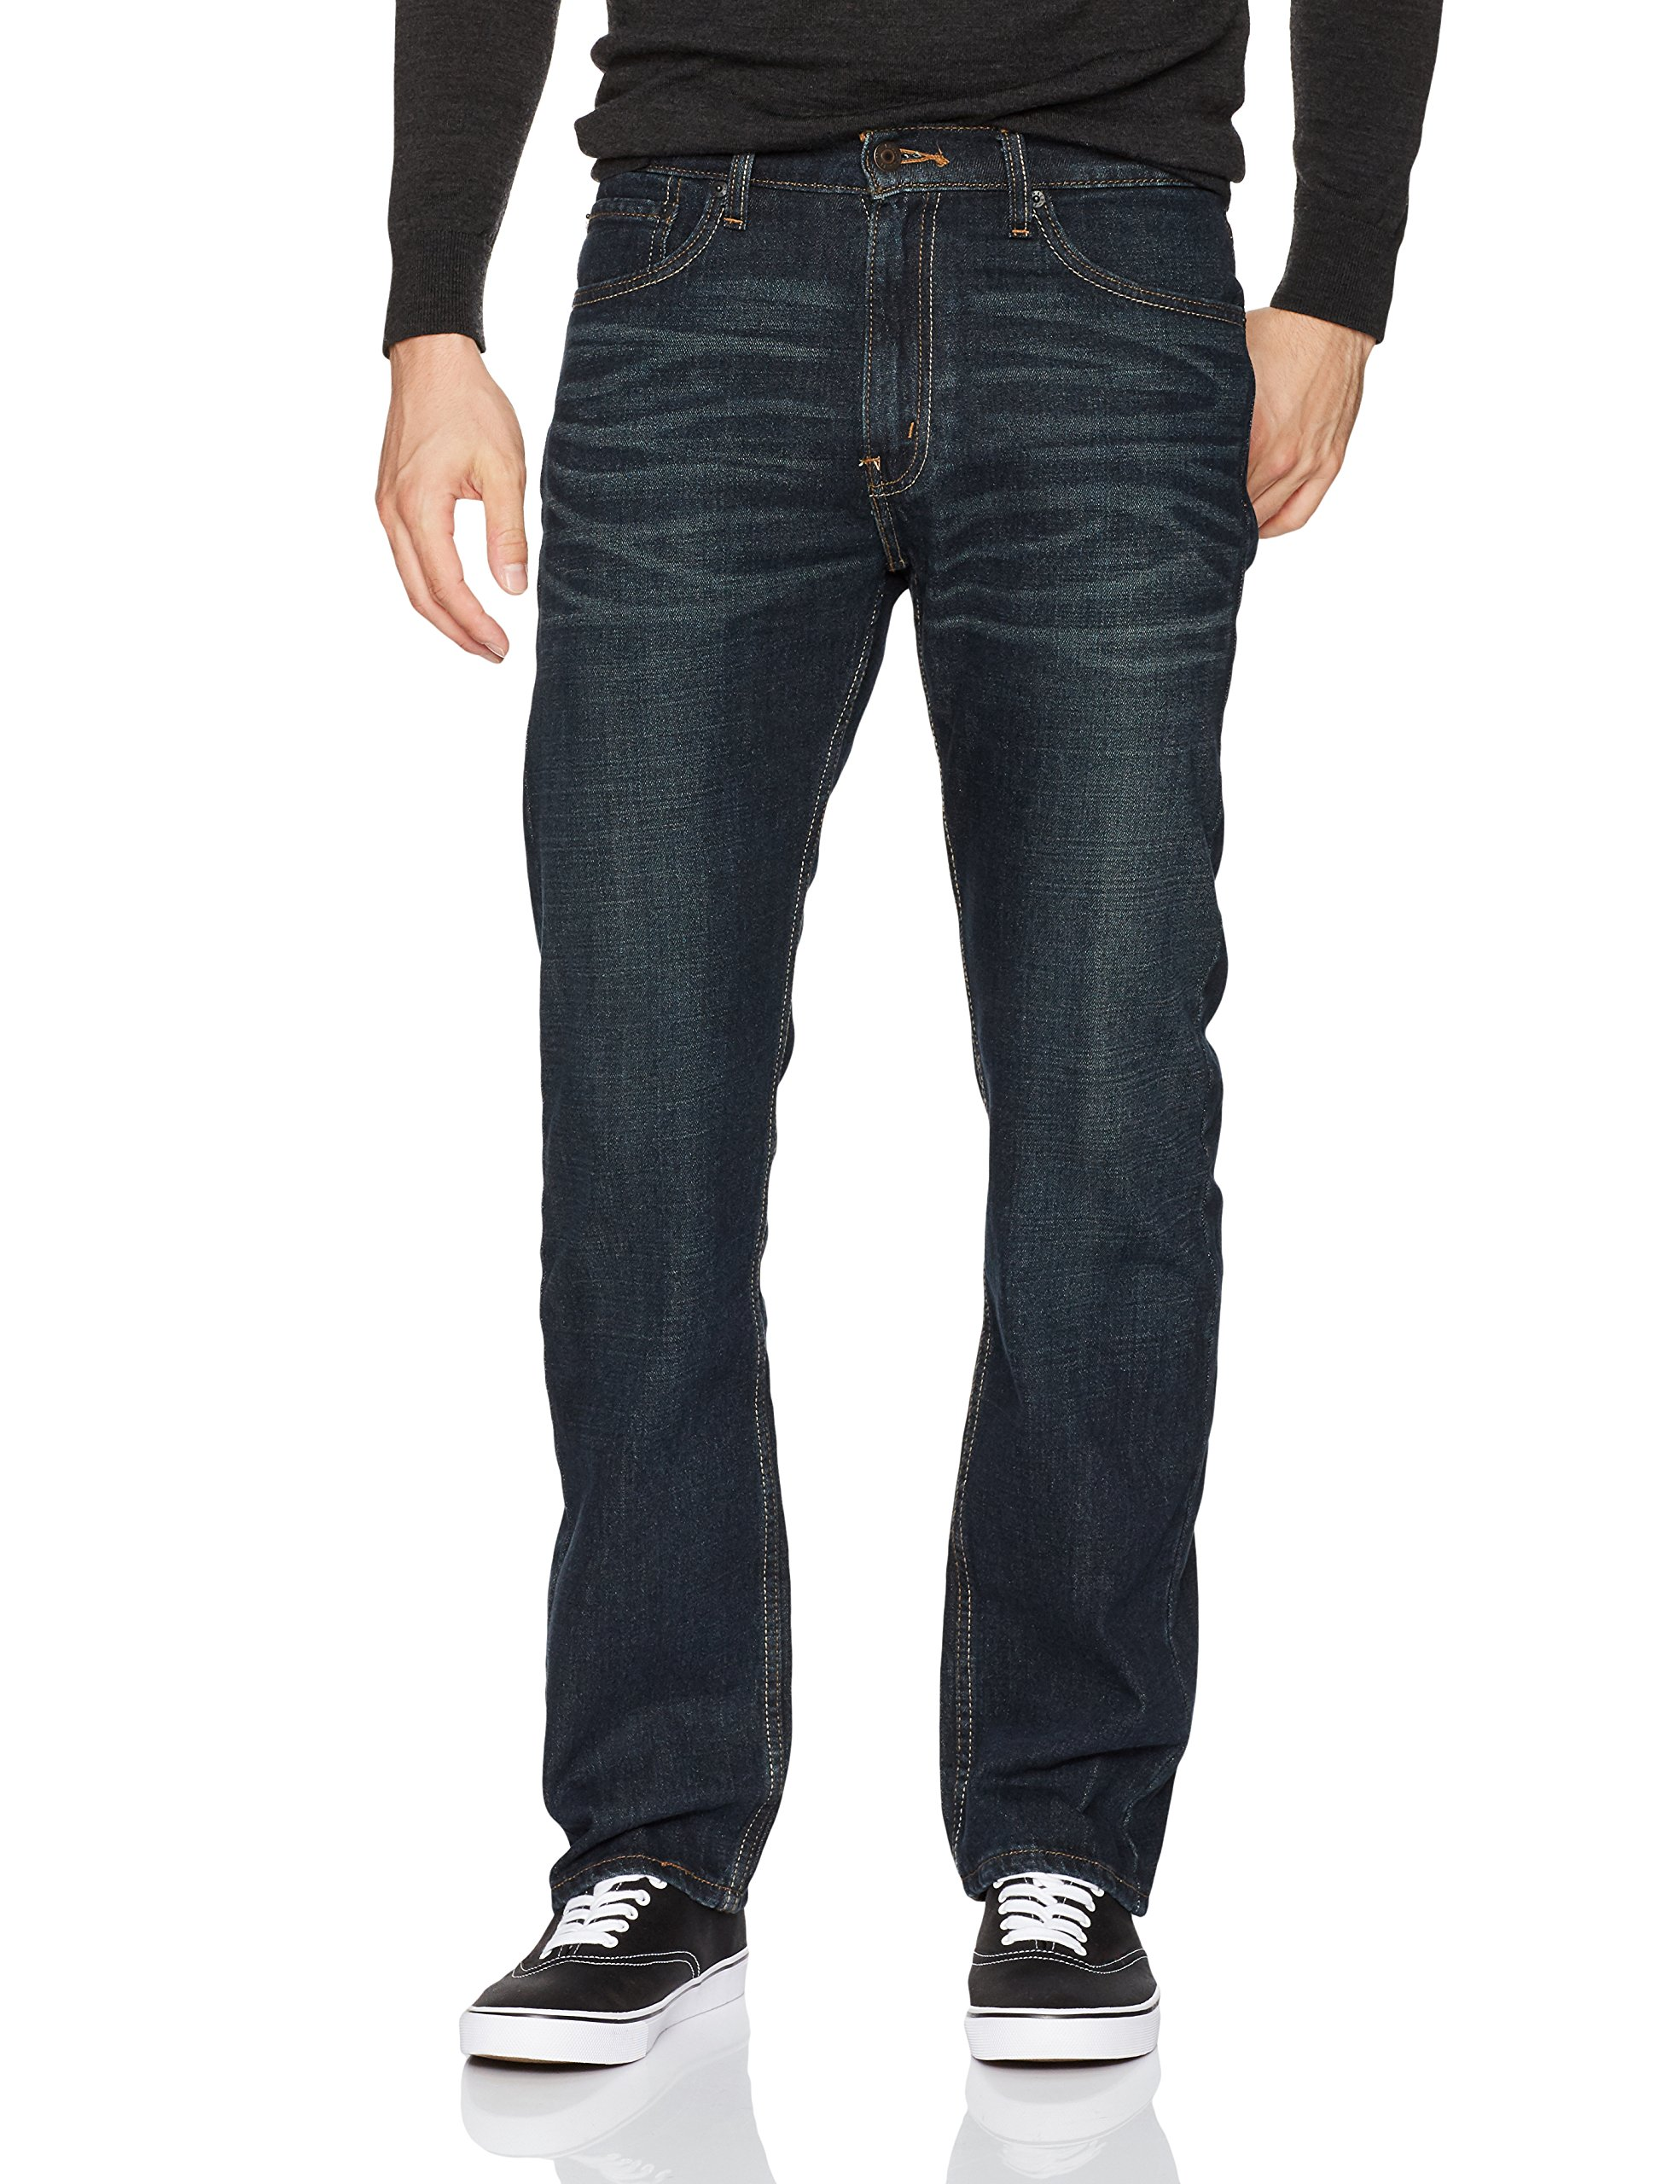 Signature by Levi Strauss & Co. Gold Label Men's Regular Fit Jeans, Westwood #1, 34W x 32L by Signature by Levi Strauss & Co. Gold Label